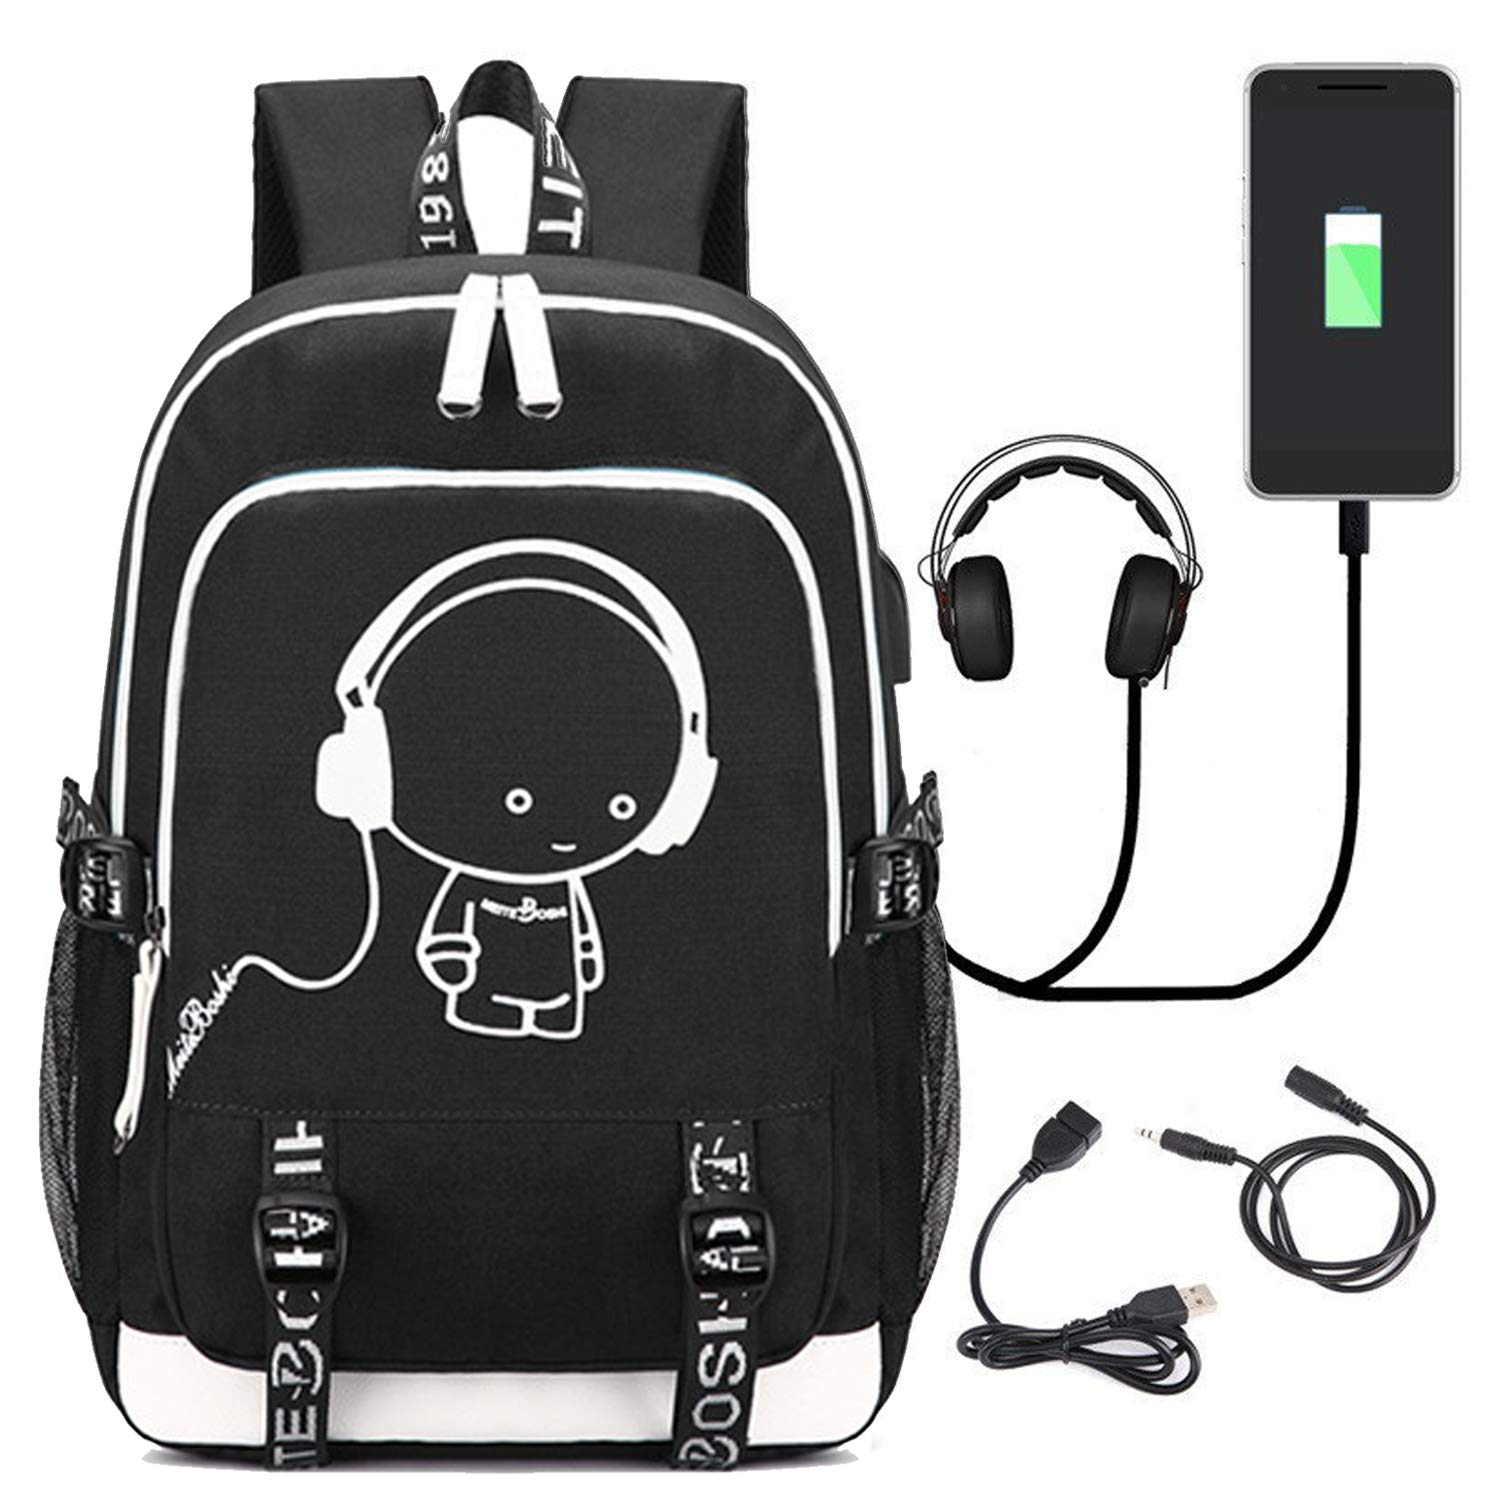 Travel Laptop Backpack, Lightweight Fortnite Multi-Functional Water-Resistant Casual Trekking Rucksack, Sports Daypack with USB Charging Port and Headset Port